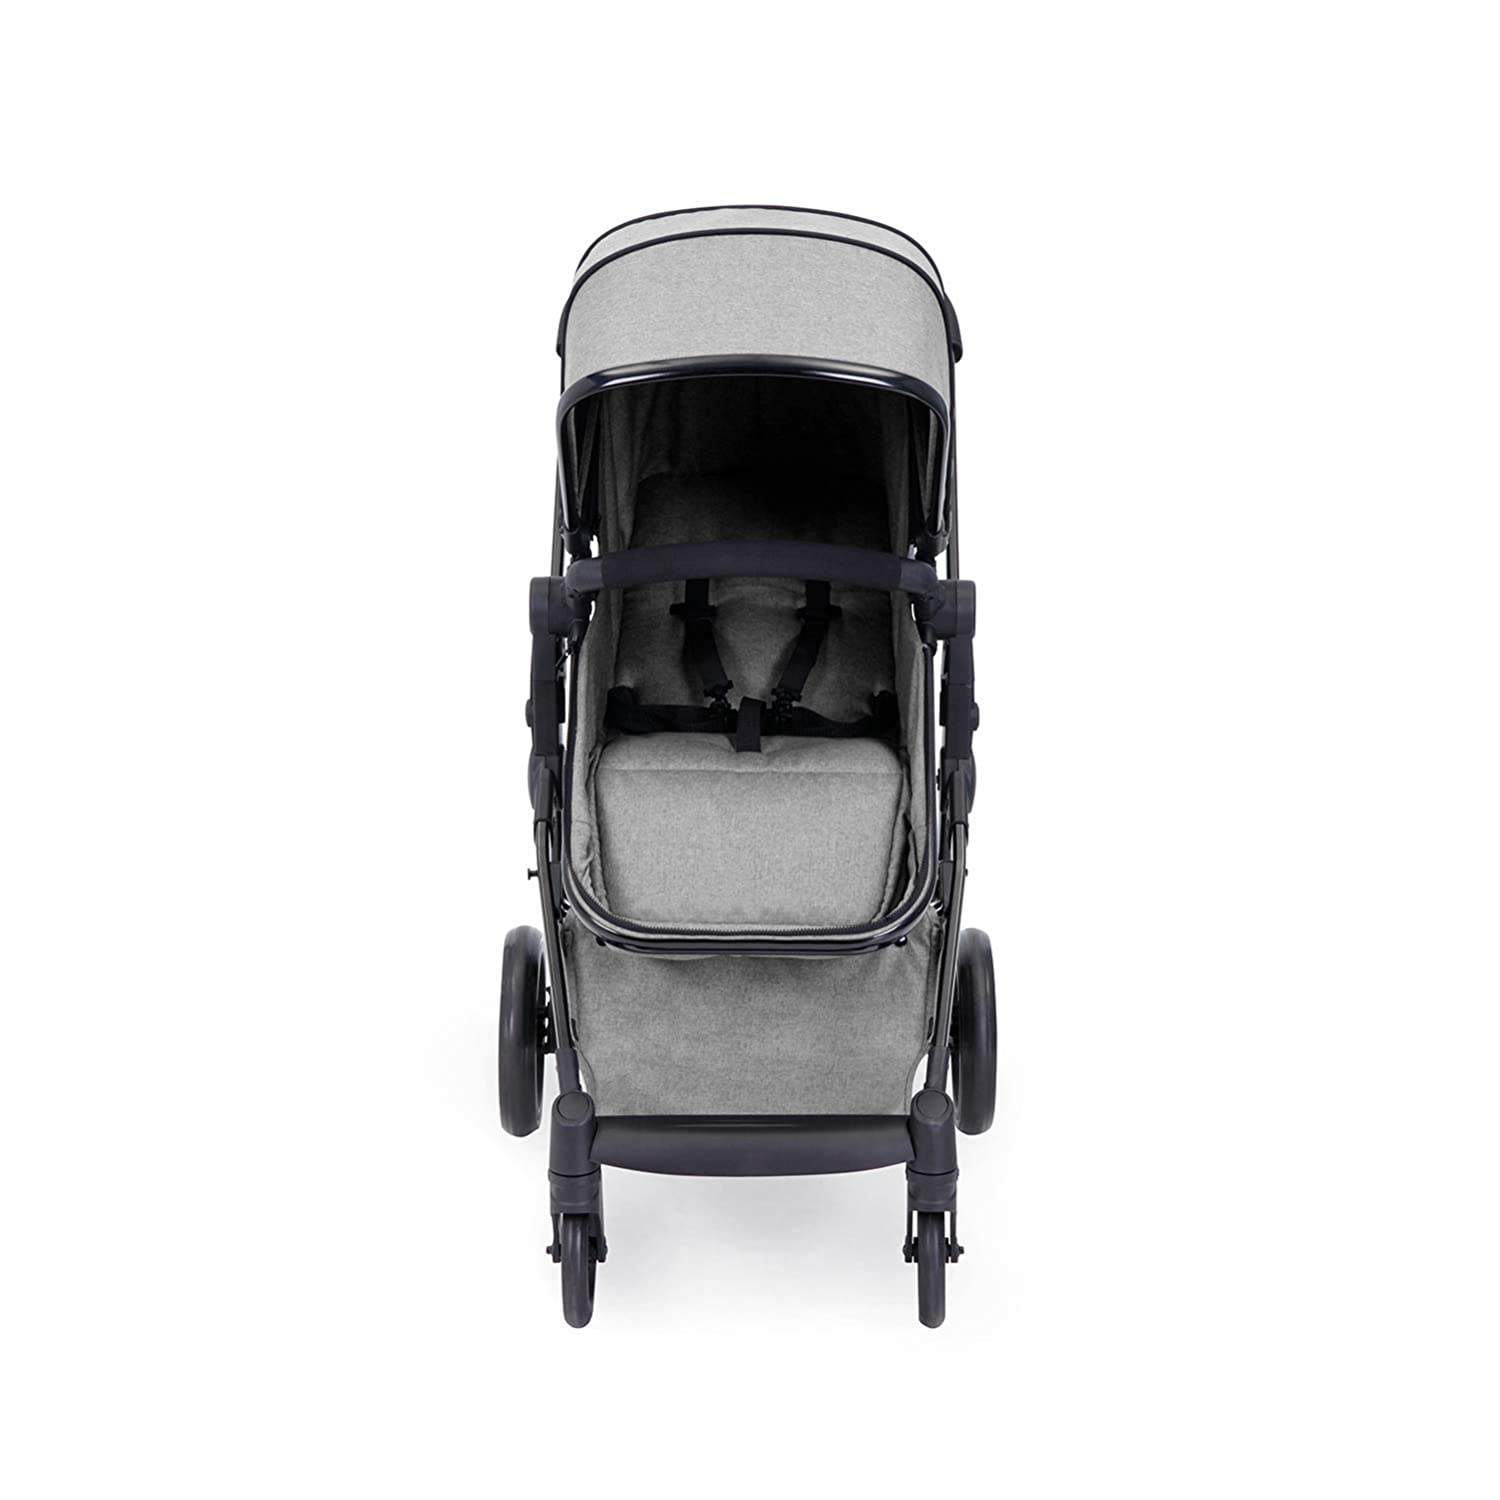 Silver Grey Includes Rear and Forward-Facing Pushchair Interchangeable Hood Foot Warmer Moon 2-in-1 Ickle Bubba Stroller and Carrycot